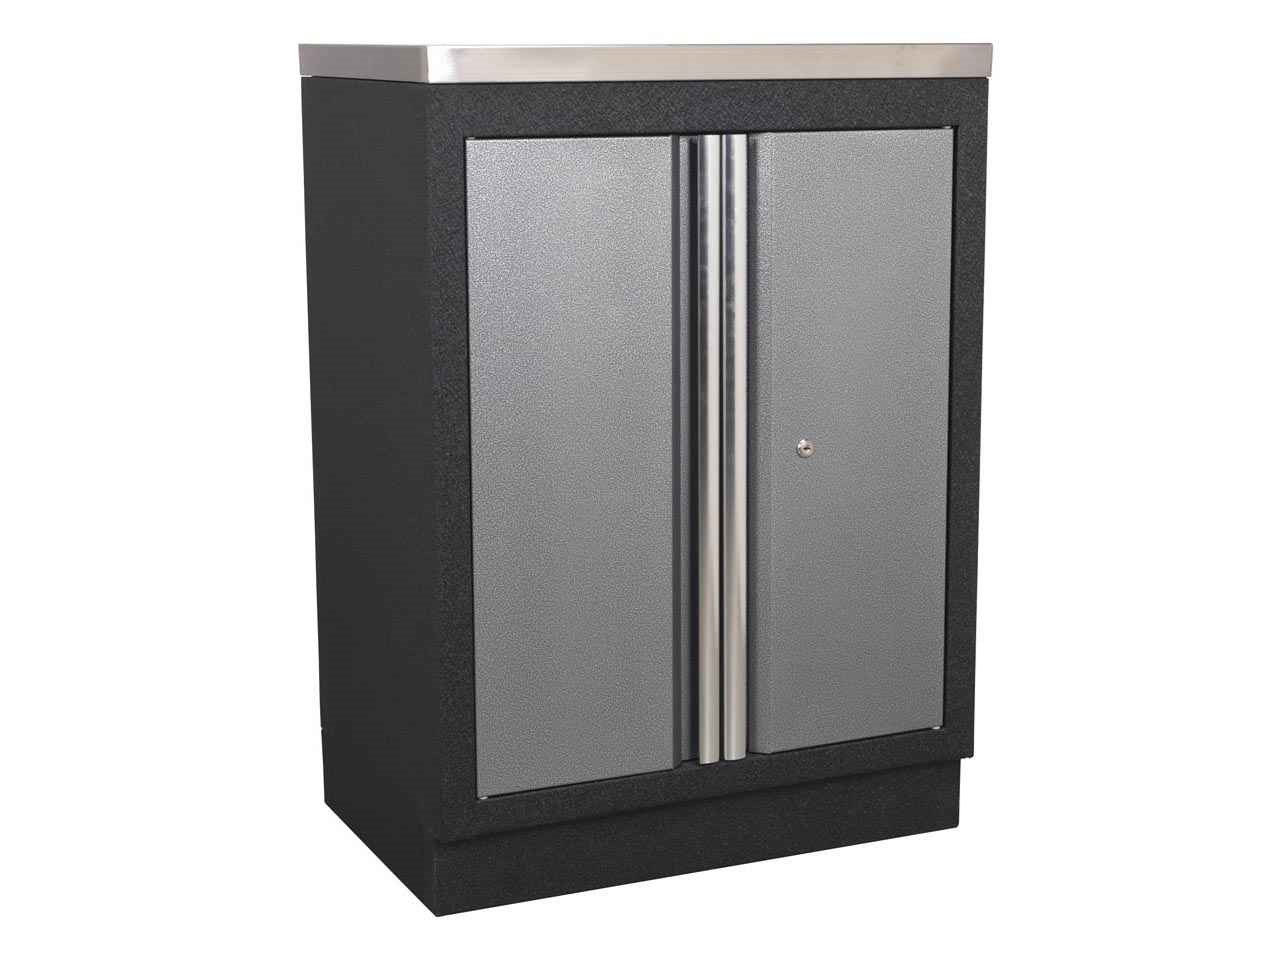 Phenomenal Sealey Apms52 Modular 2 Door Floor Cabinet 680Mm Home Interior And Landscaping Ologienasavecom